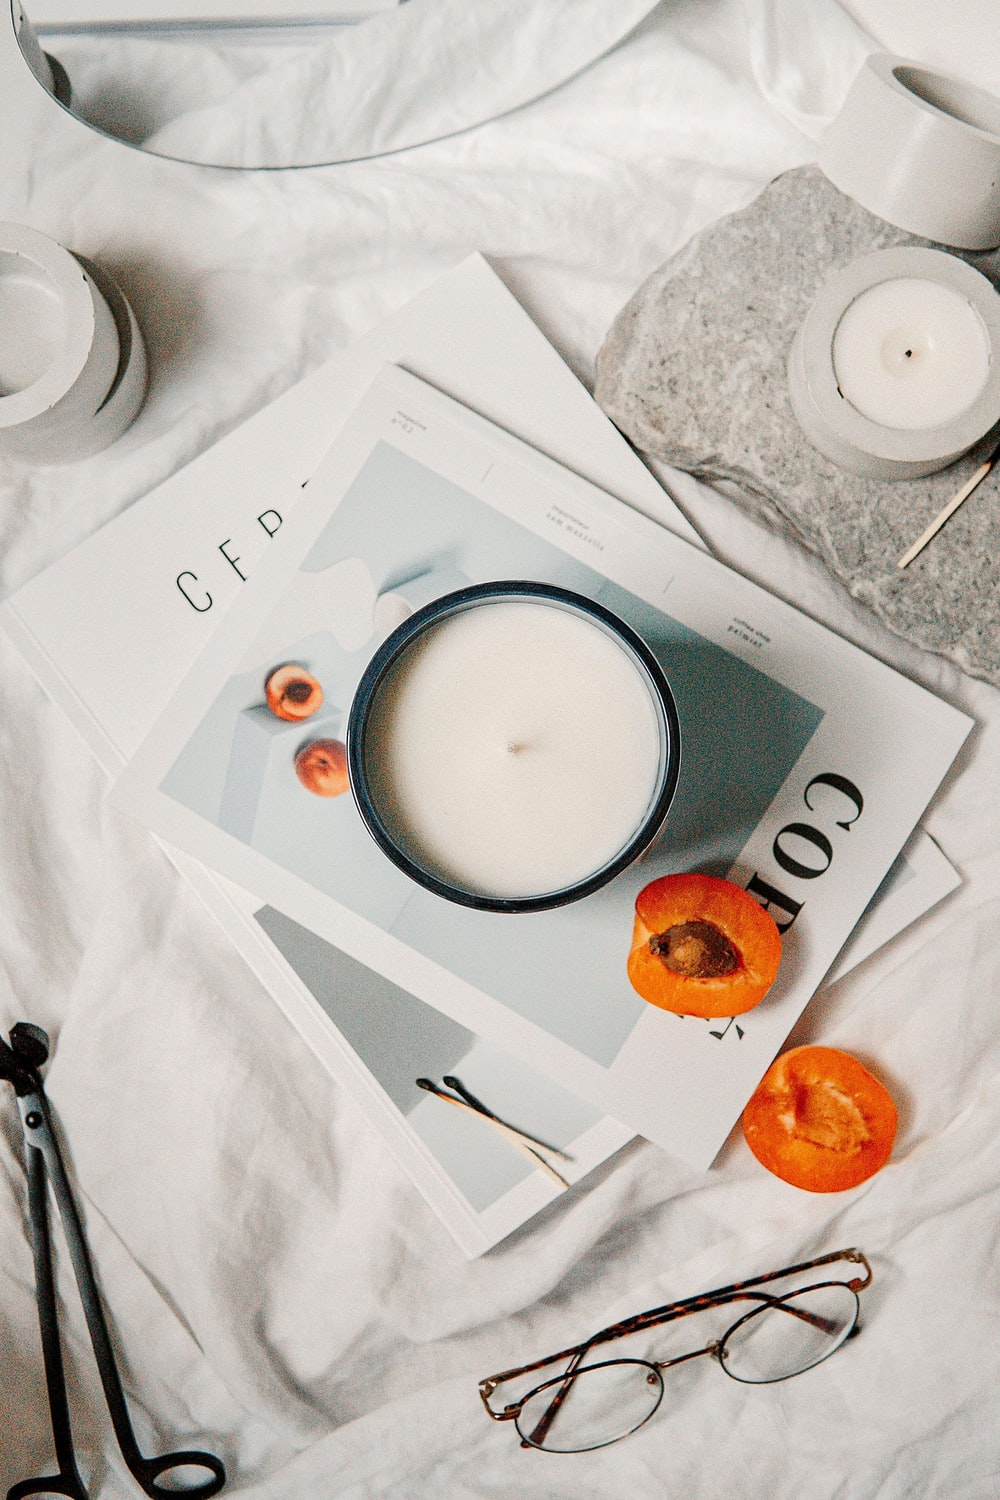 white ceramic cup with saucer on white paper